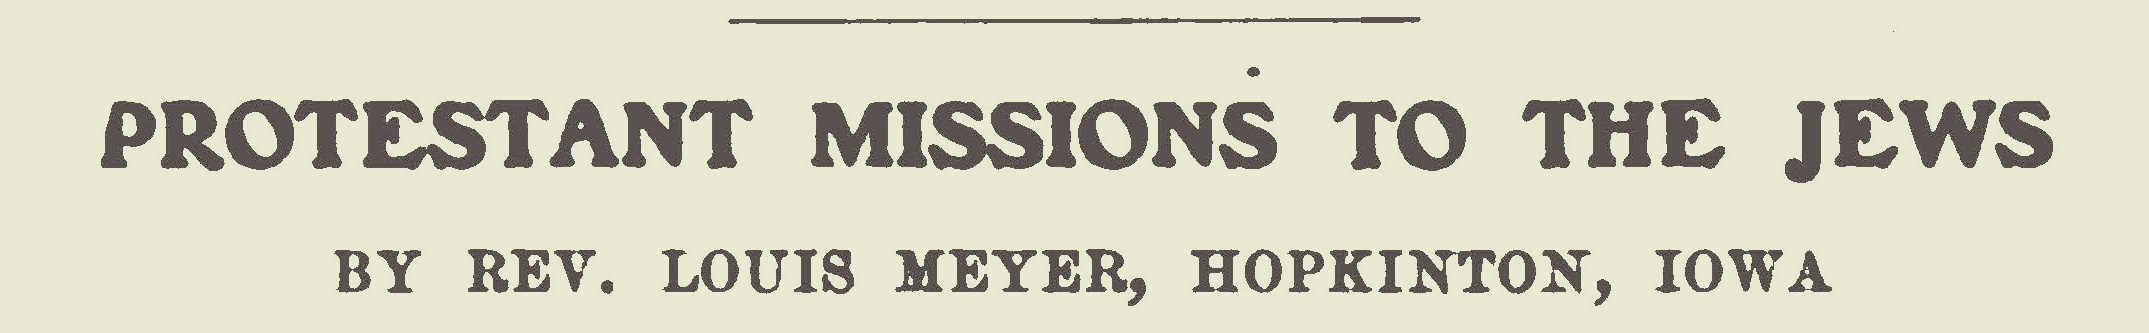 Meyer, Louis, 1902 Protestant Missions to the Jews Title Page.jpg